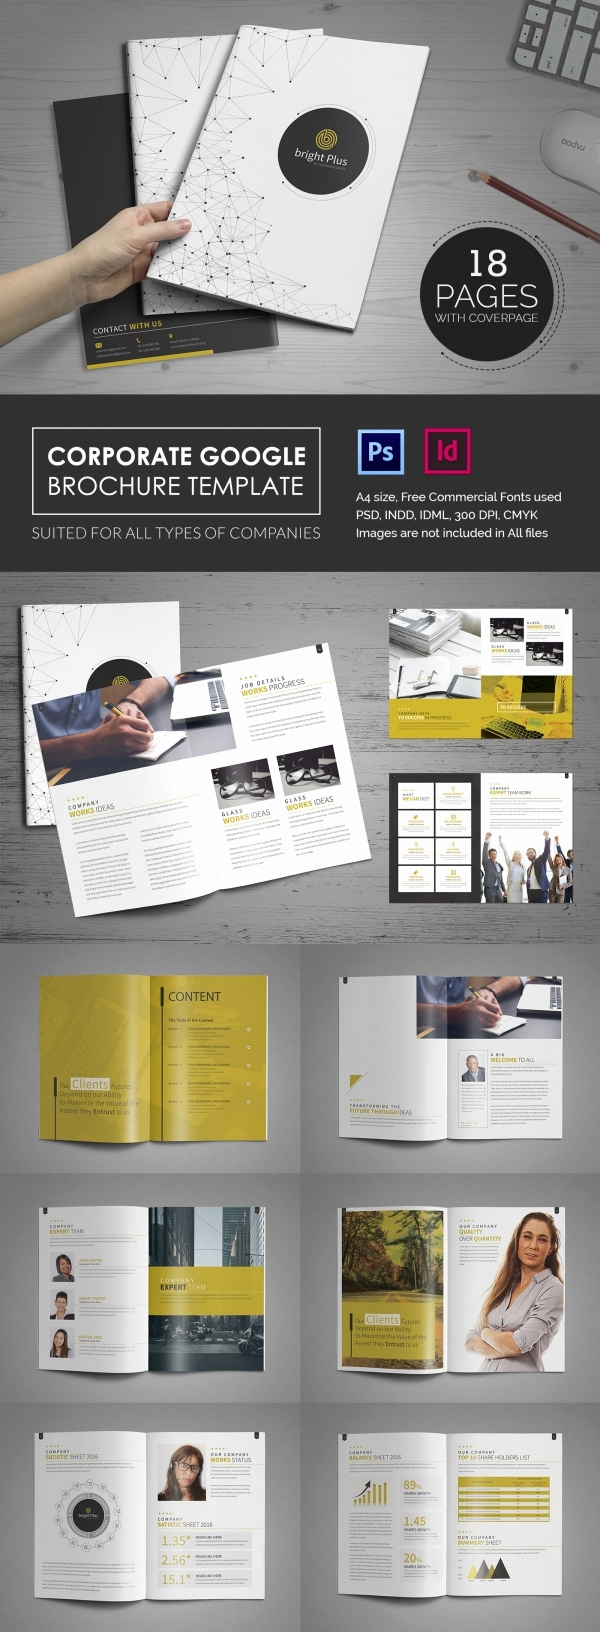 Google Docs Pamphlet Template Luxury 10 Fabulous Google Brochure Templates